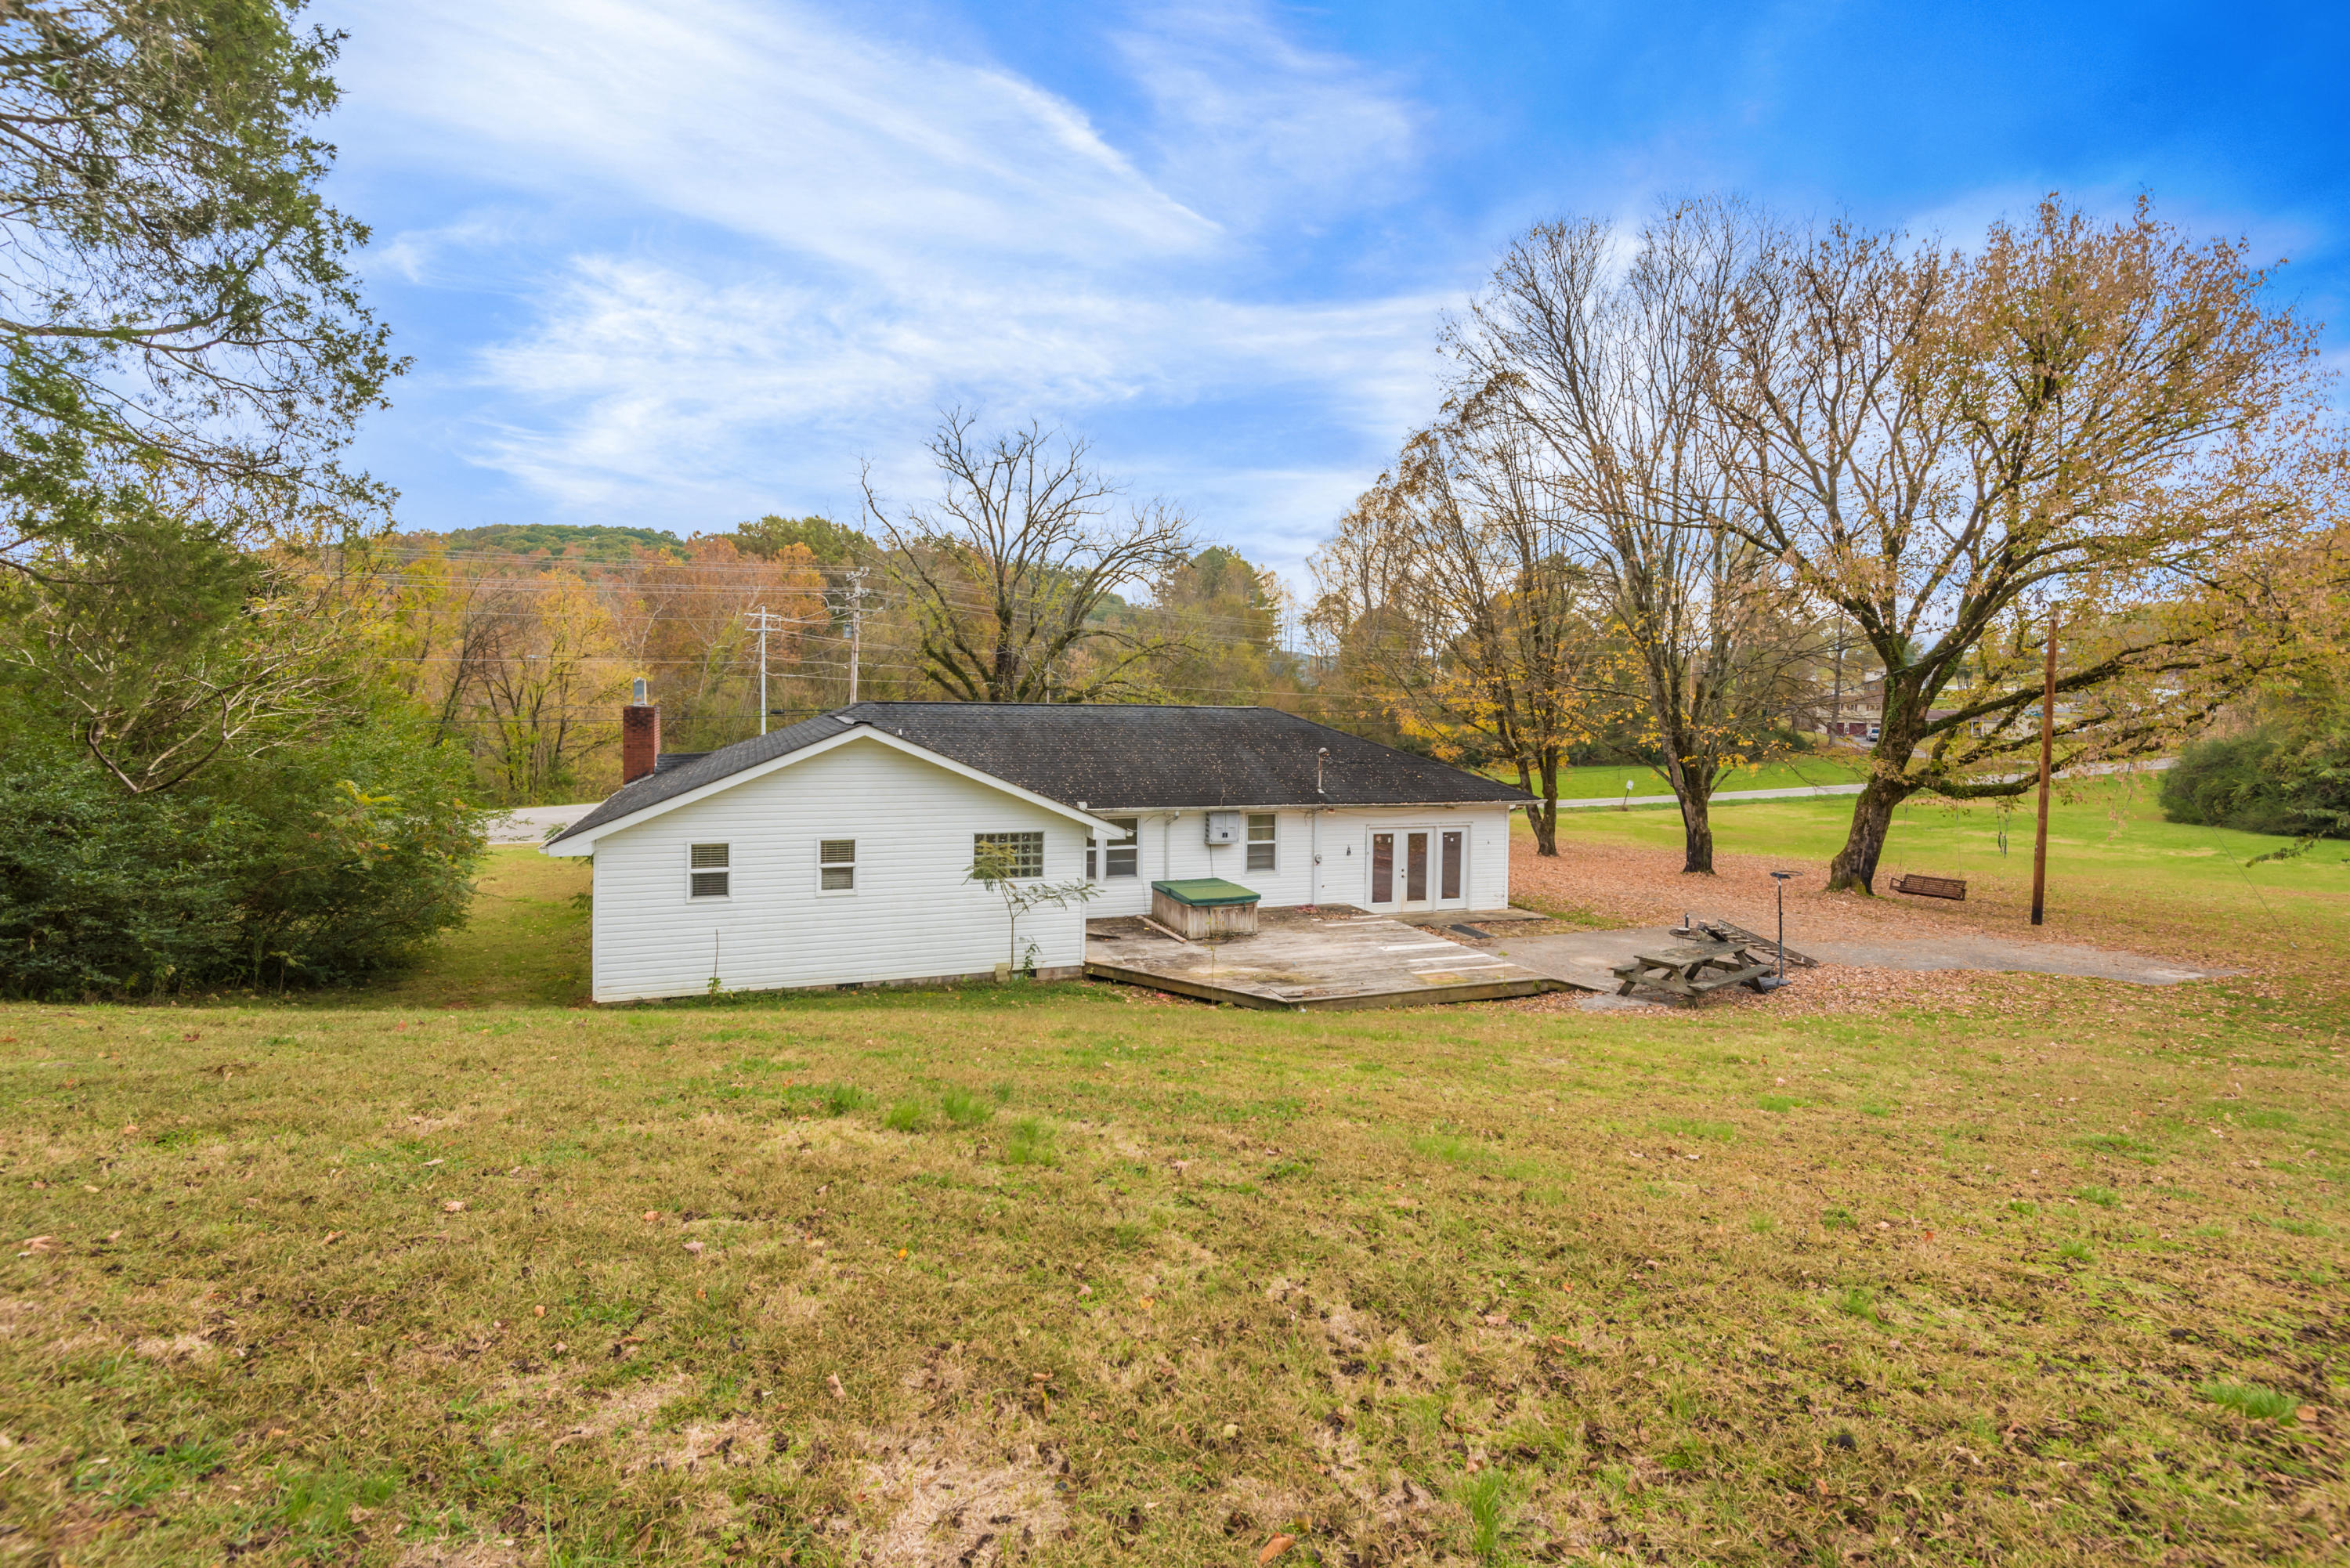 525 Burkemill Rd, Rockwood, Tennessee 37854, 3 Bedrooms Bedrooms, ,2 BathroomsBathrooms,Single Family,For Sale,Burkemill,1100256